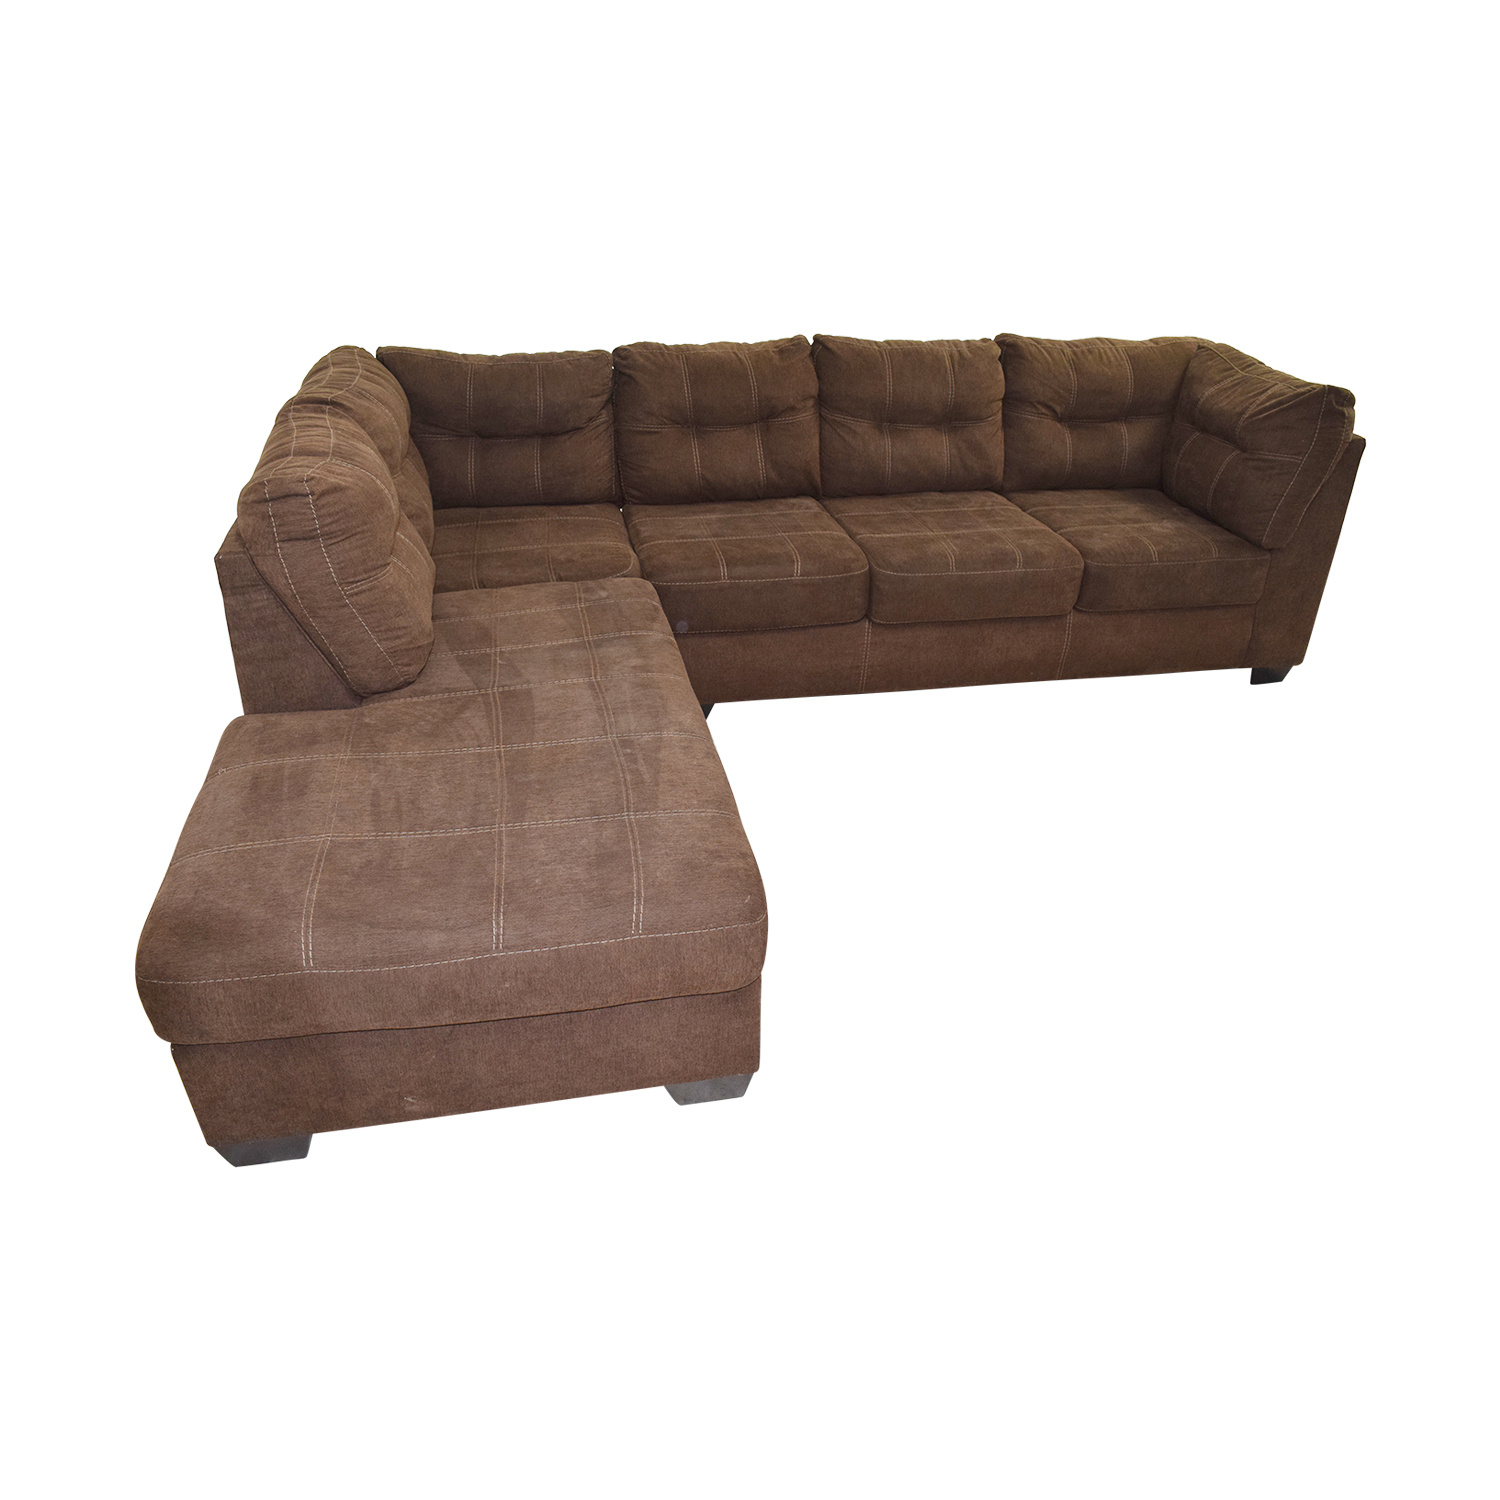 64 off brown l shaped chaise sectional sofa sofas for Brown sectional sofa with chaise